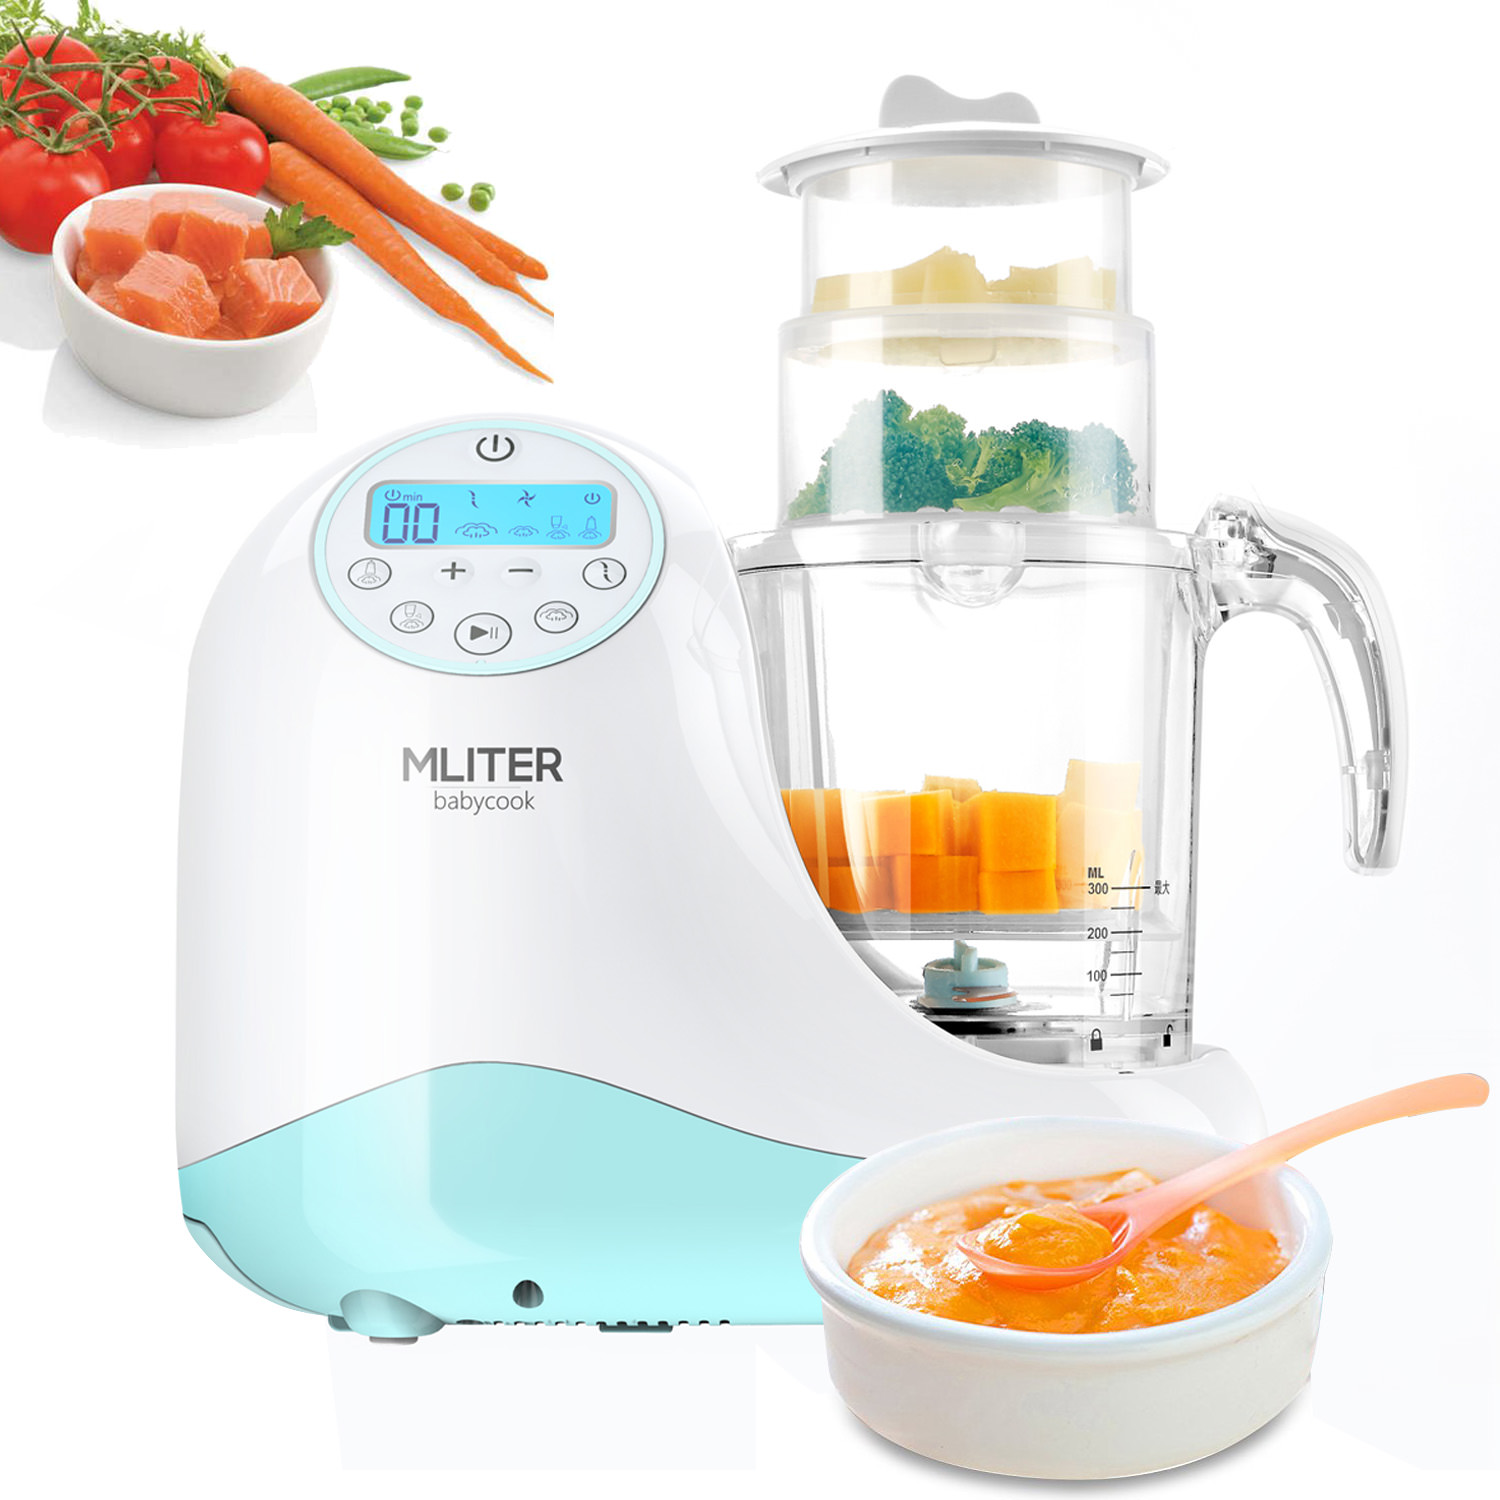 Baby Food Processor Chopper And Steamer 7 in 1, Food Maker For Toddlers With Automatic Steam, Blend, Chop,... by MLITER